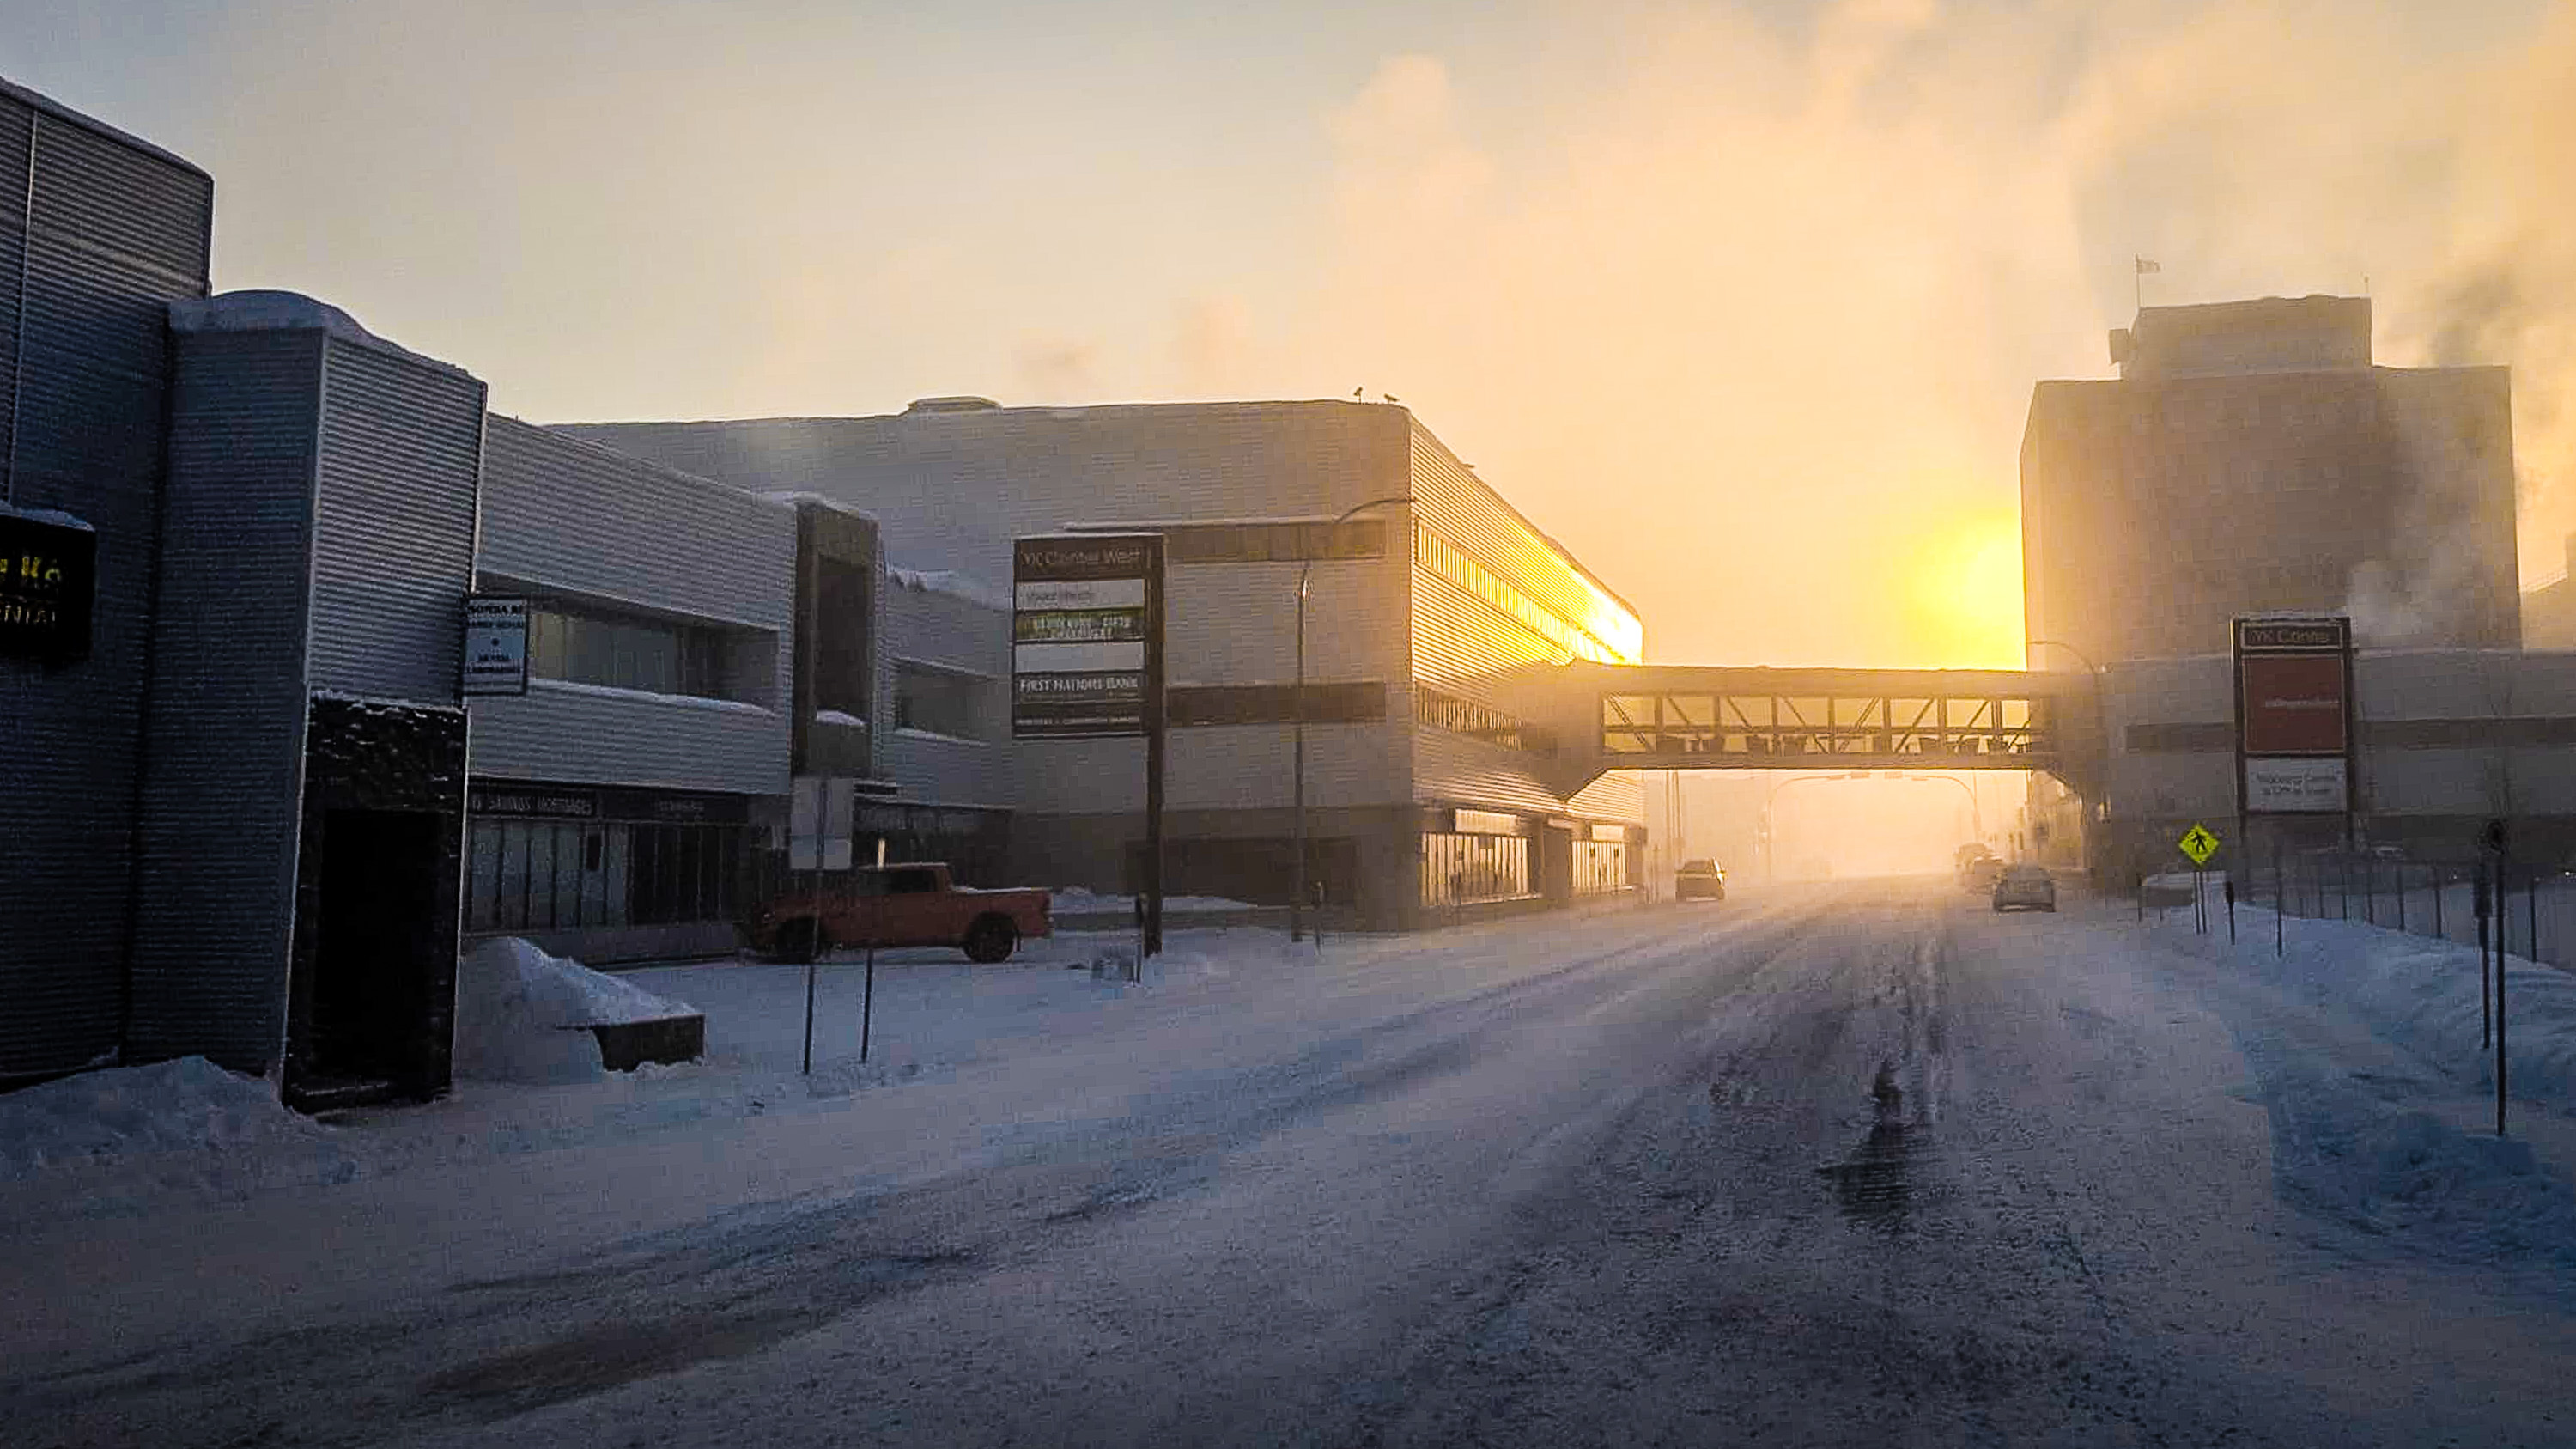 A wintry Sunday morning in Yellowknife in February 2019